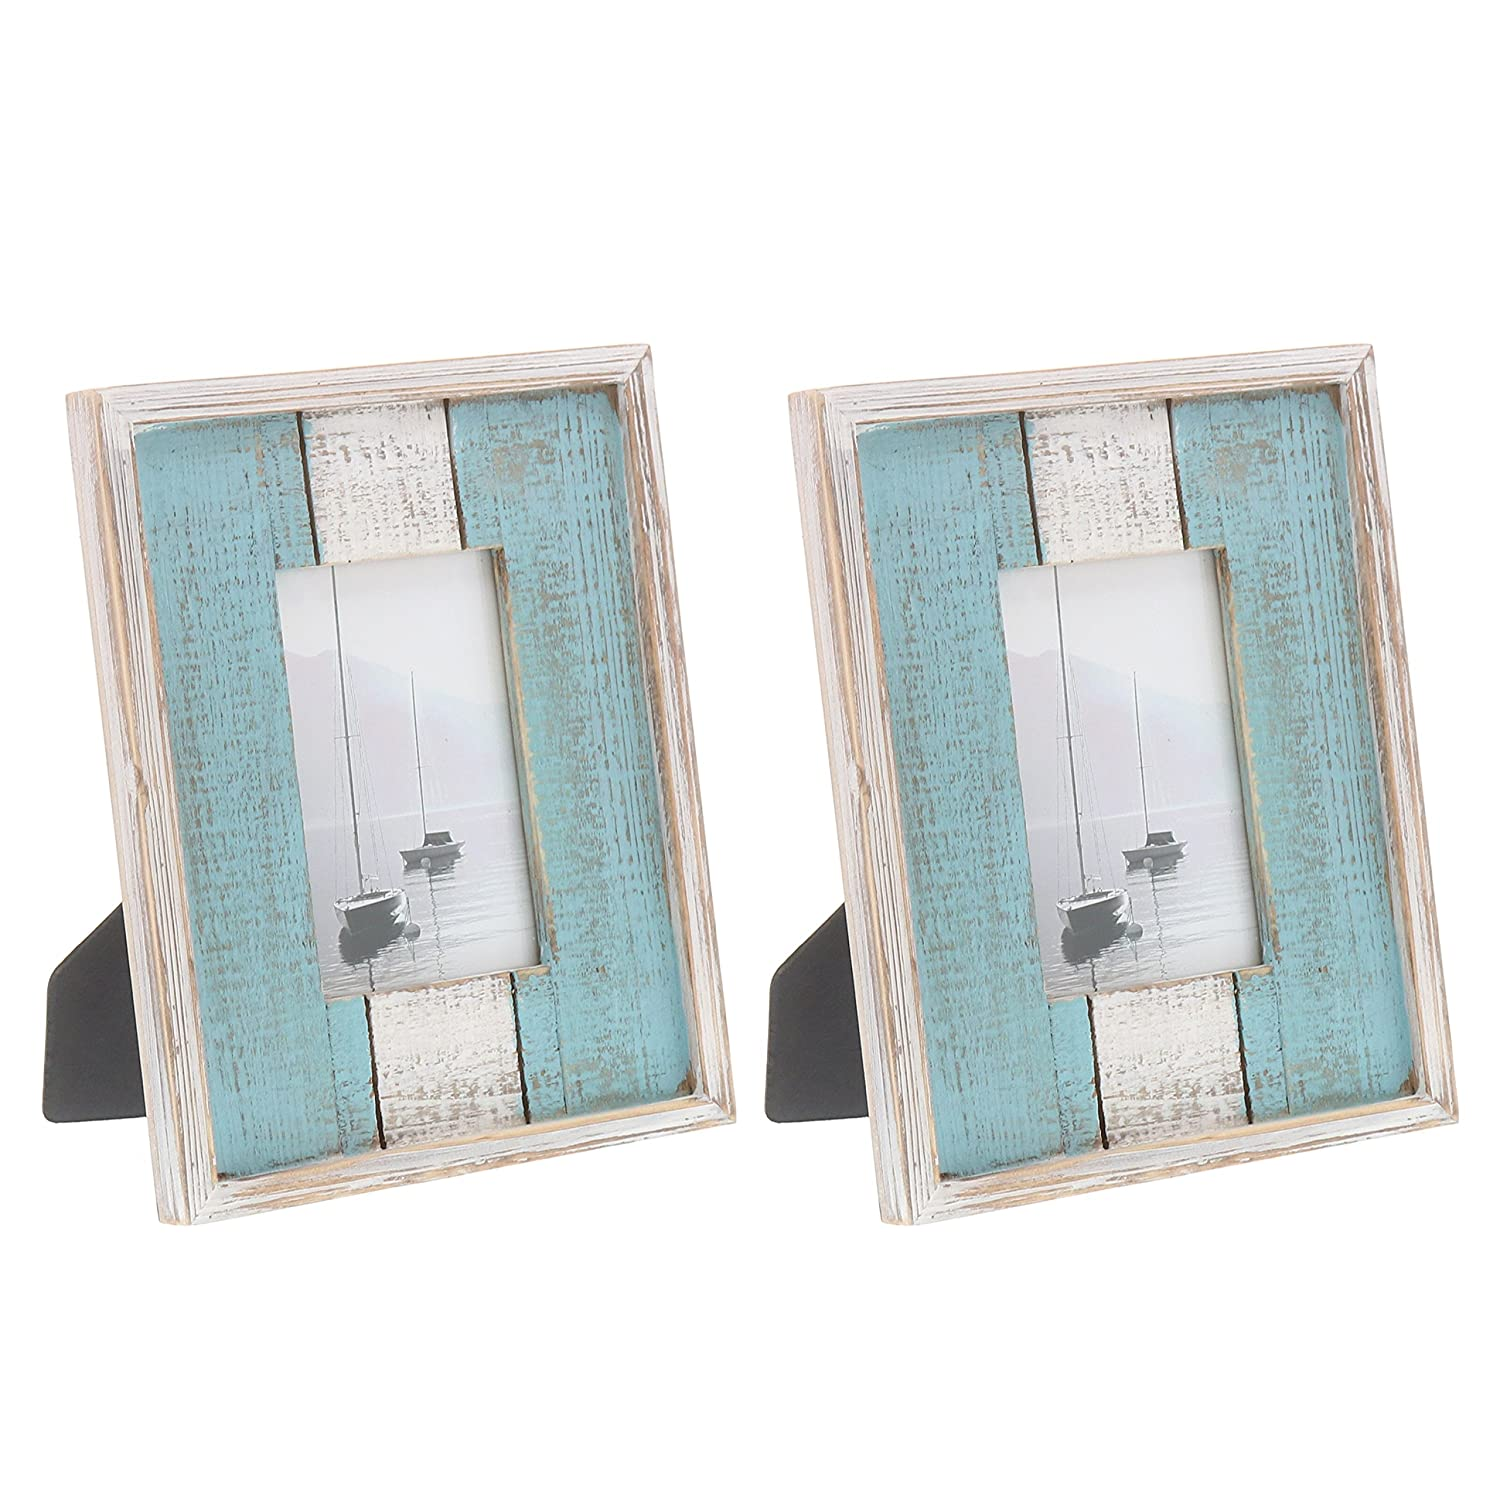 "Barnyard Designs Rustic Distressed Picture Frame, 4"" x 6"" Wood Photo Frame in White and Turquoise (2-Pack)"